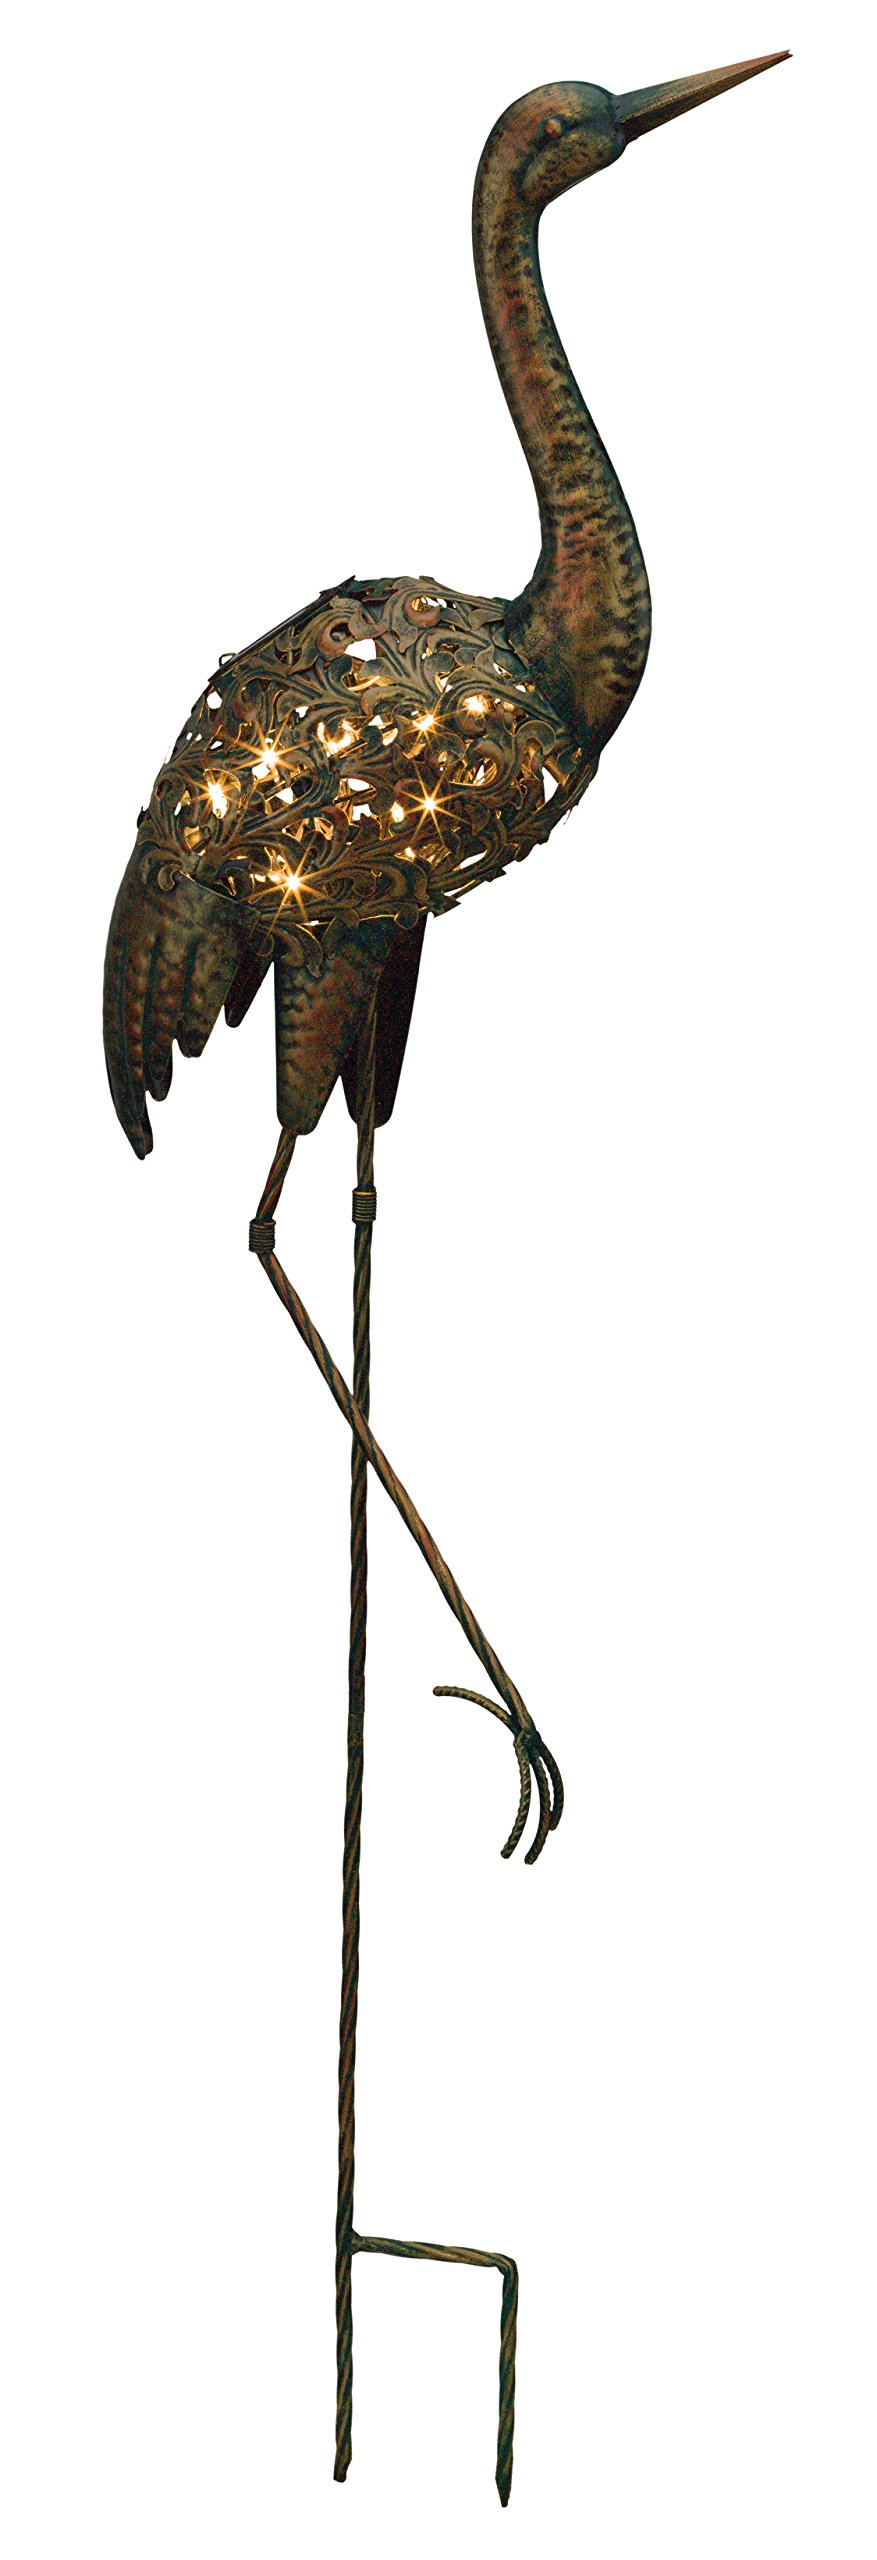 Regal Art & Gift Solar Bird Stake - Crane